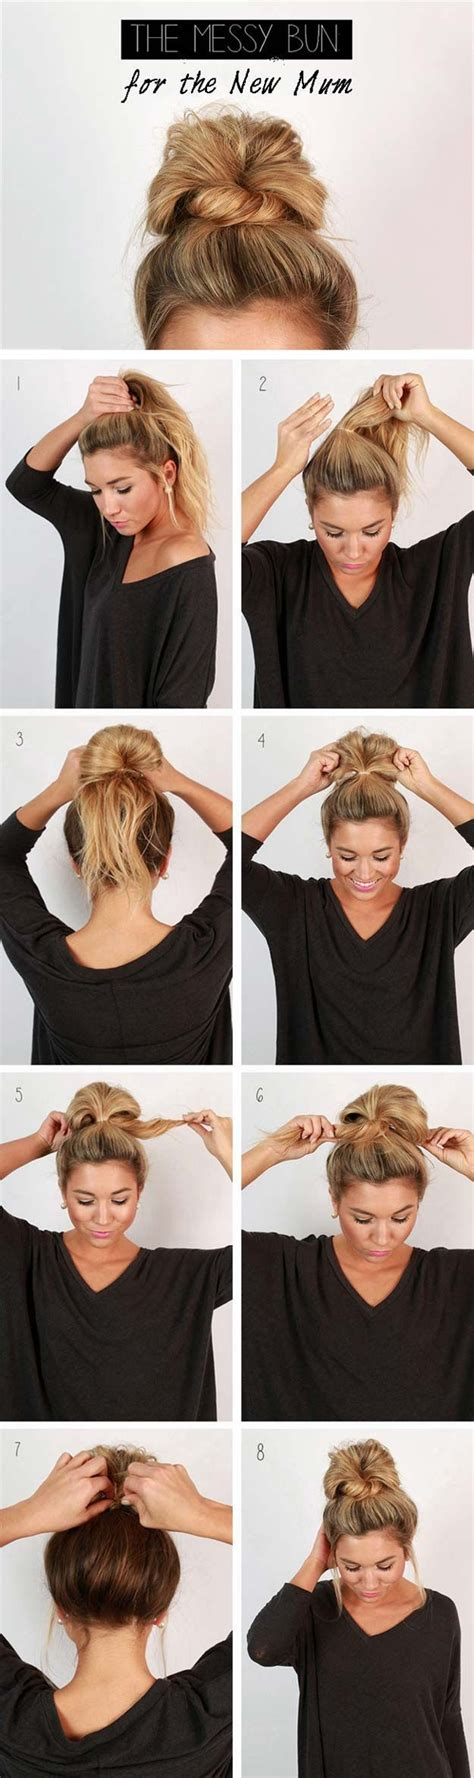 hairstyles for school lazy 25 best ideas about lazy day hairstyles on pinterest